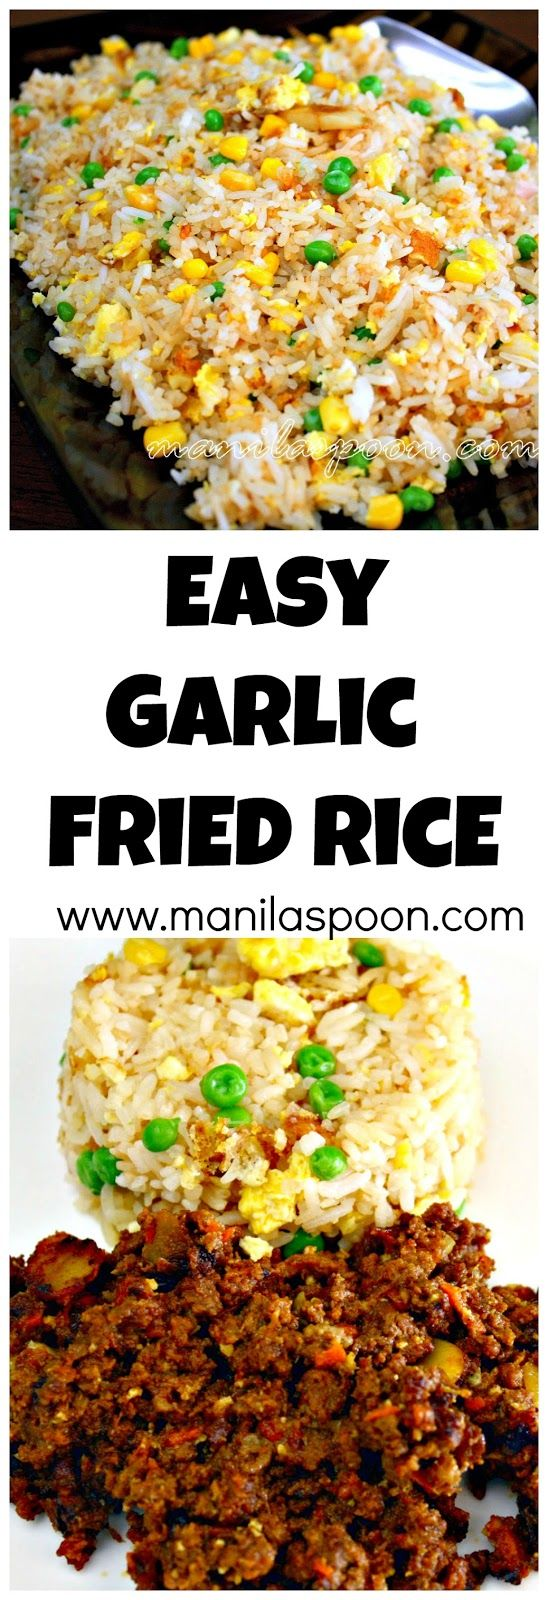 No need to throw left-over rice when you can make this easy and tasty garlic fried rice.